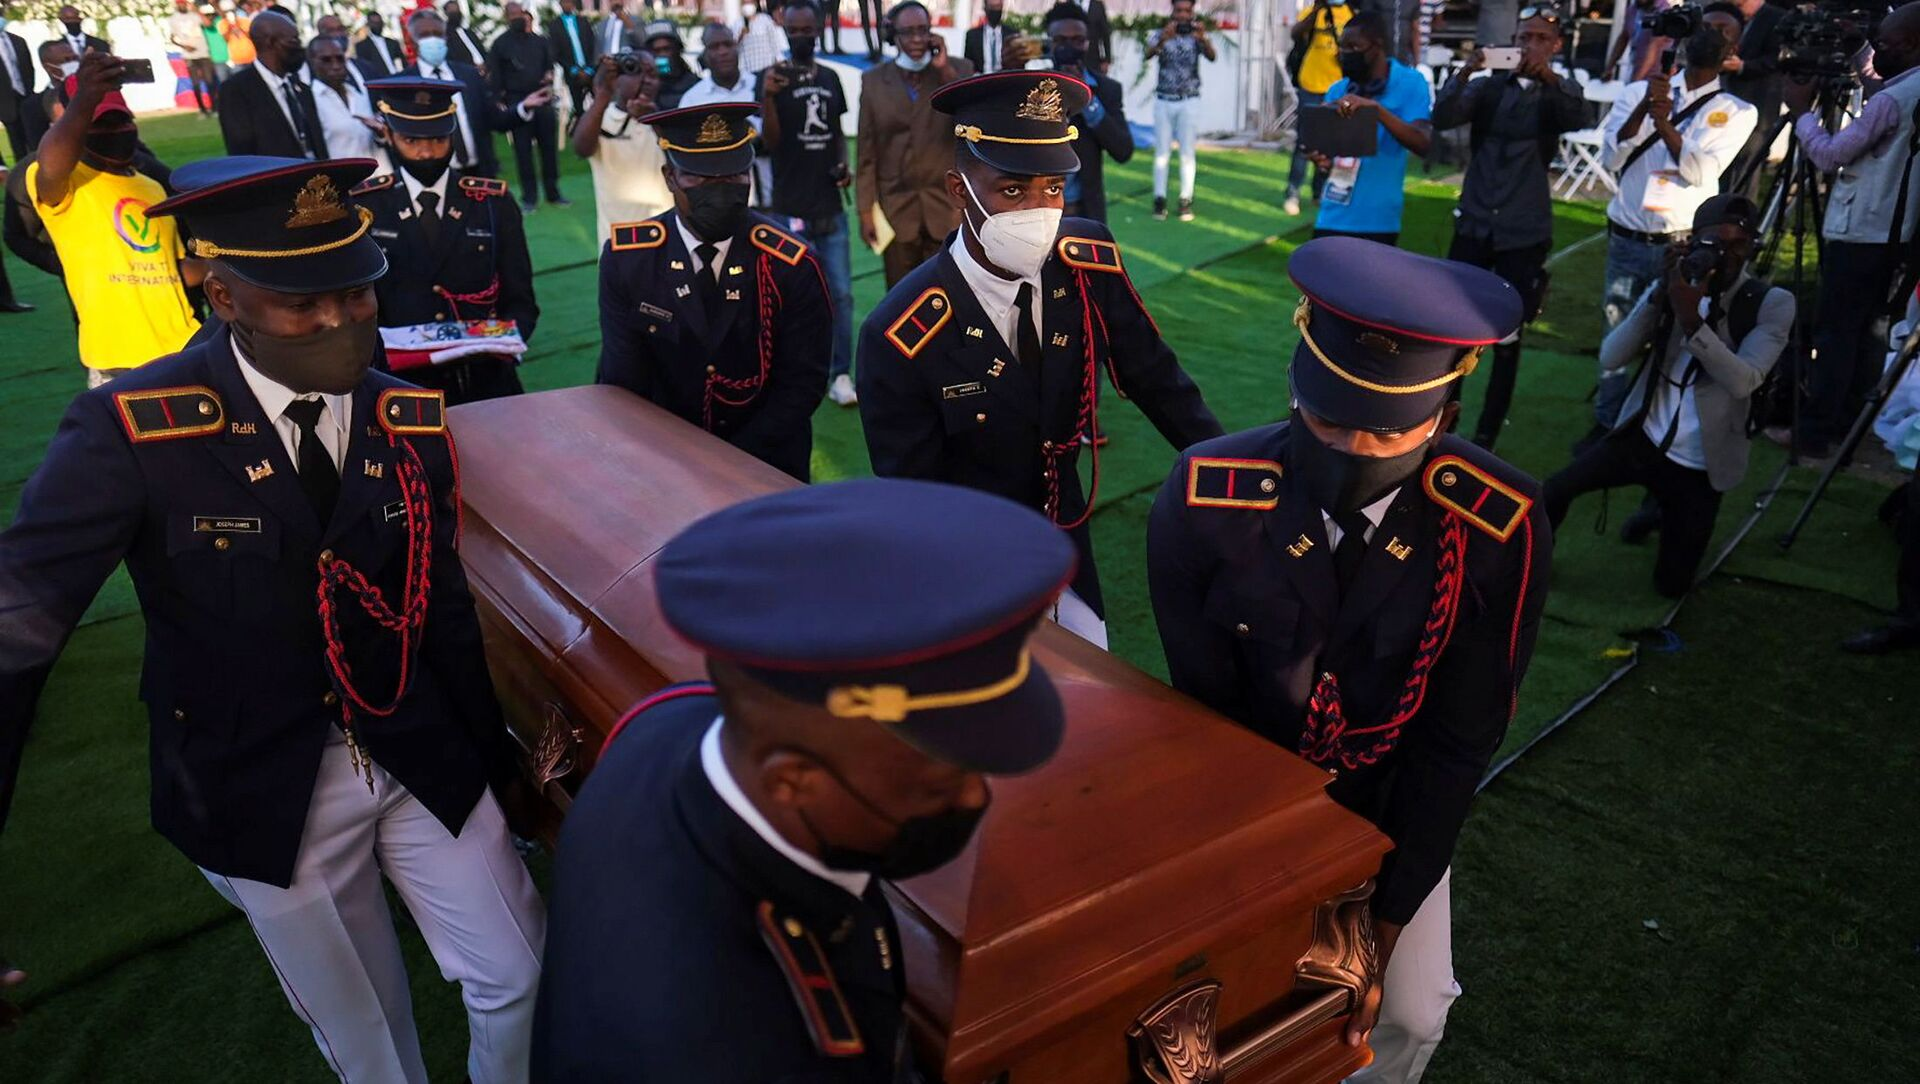 Pallbearers in military attire carry the coffin holding the body of late Haitian President Jovenel Moise after he was shot dead at his home in Port-au-Prince earlier this month, in Cap-Haitien, July 23, 2021. REUTERS/Ricardo Arduengo - Sputnik International, 1920, 23.07.2021